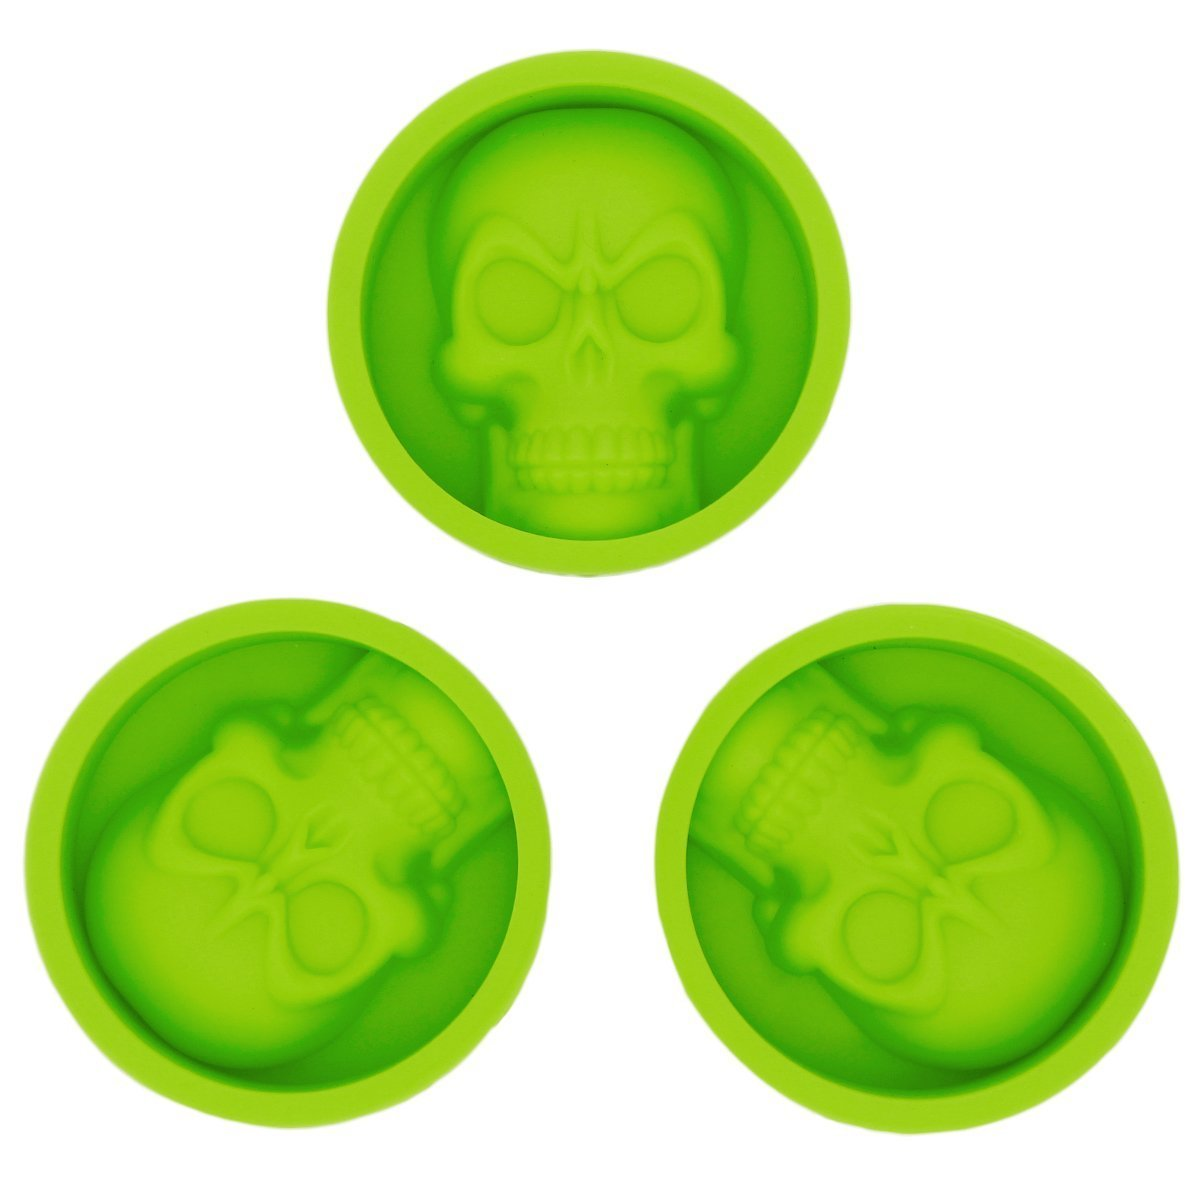 KAILIN 3 Pcs Reusable Silicone Skull Baking Cups -Cupcake Liners -Muffin Cups Chocolate Soap Candle Tray Cake Mold For Party KL201